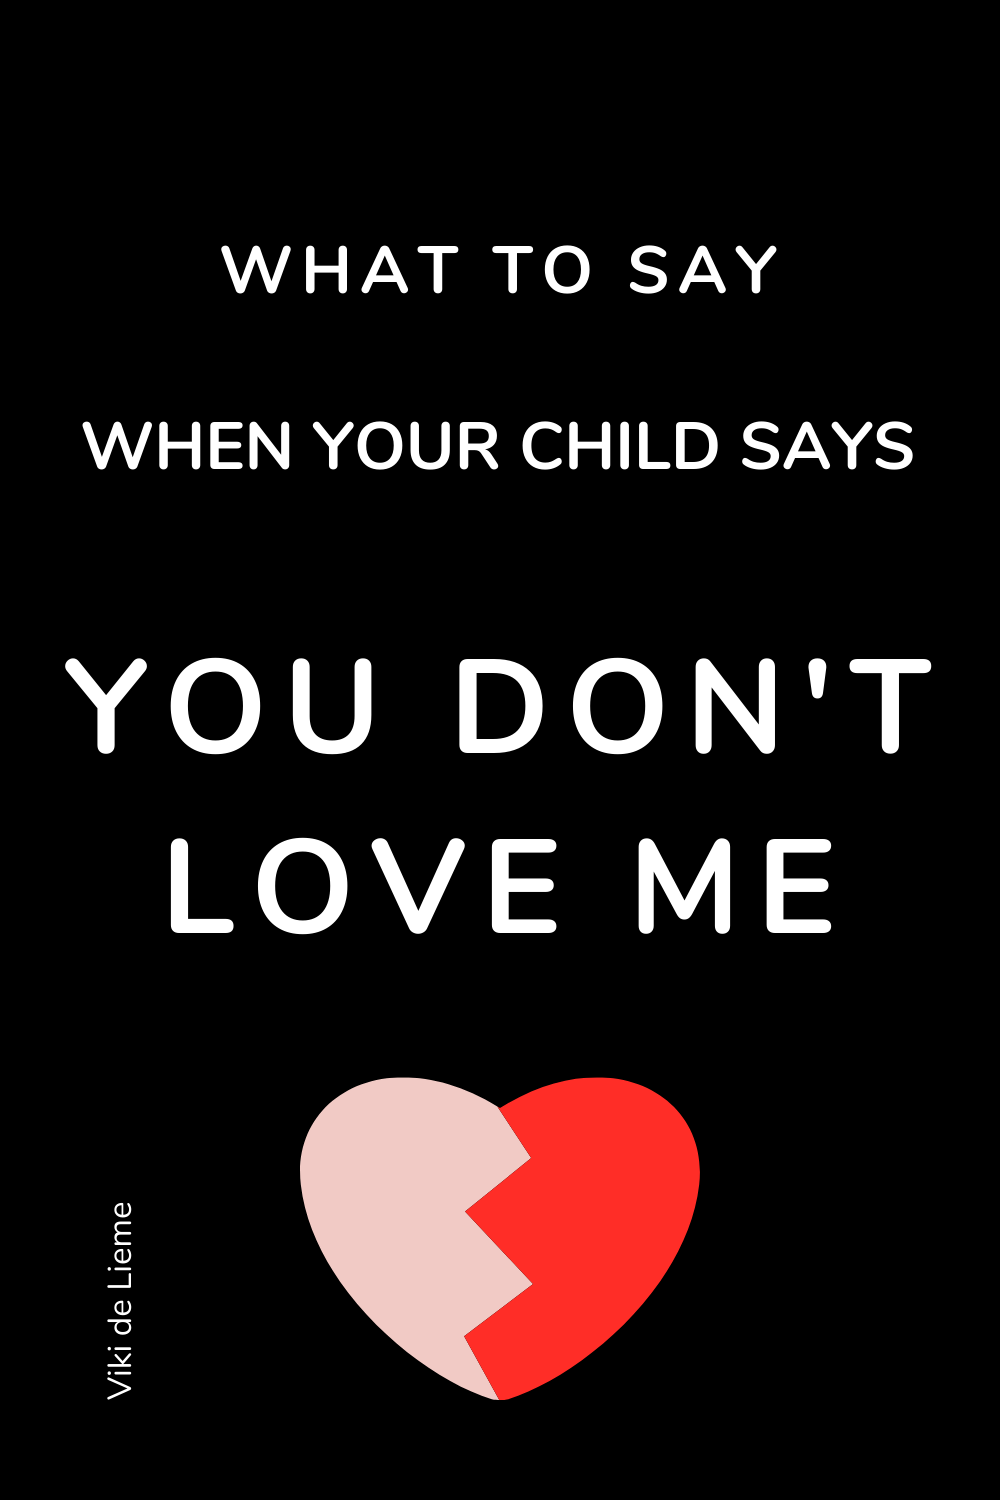 Hearing your child saying that he or she don't feel loved by you, is triggering for most parents. We take it personally and we try to explain that it can't possibly be true. What we seem to miss is that in that moment - it is true. For the child. Here's how to approach this #mindfulparenting #positiveparenting #youdon'tloveme #unconditionalparenting #parentinghelp #smartparenting #children'sbigfeelings